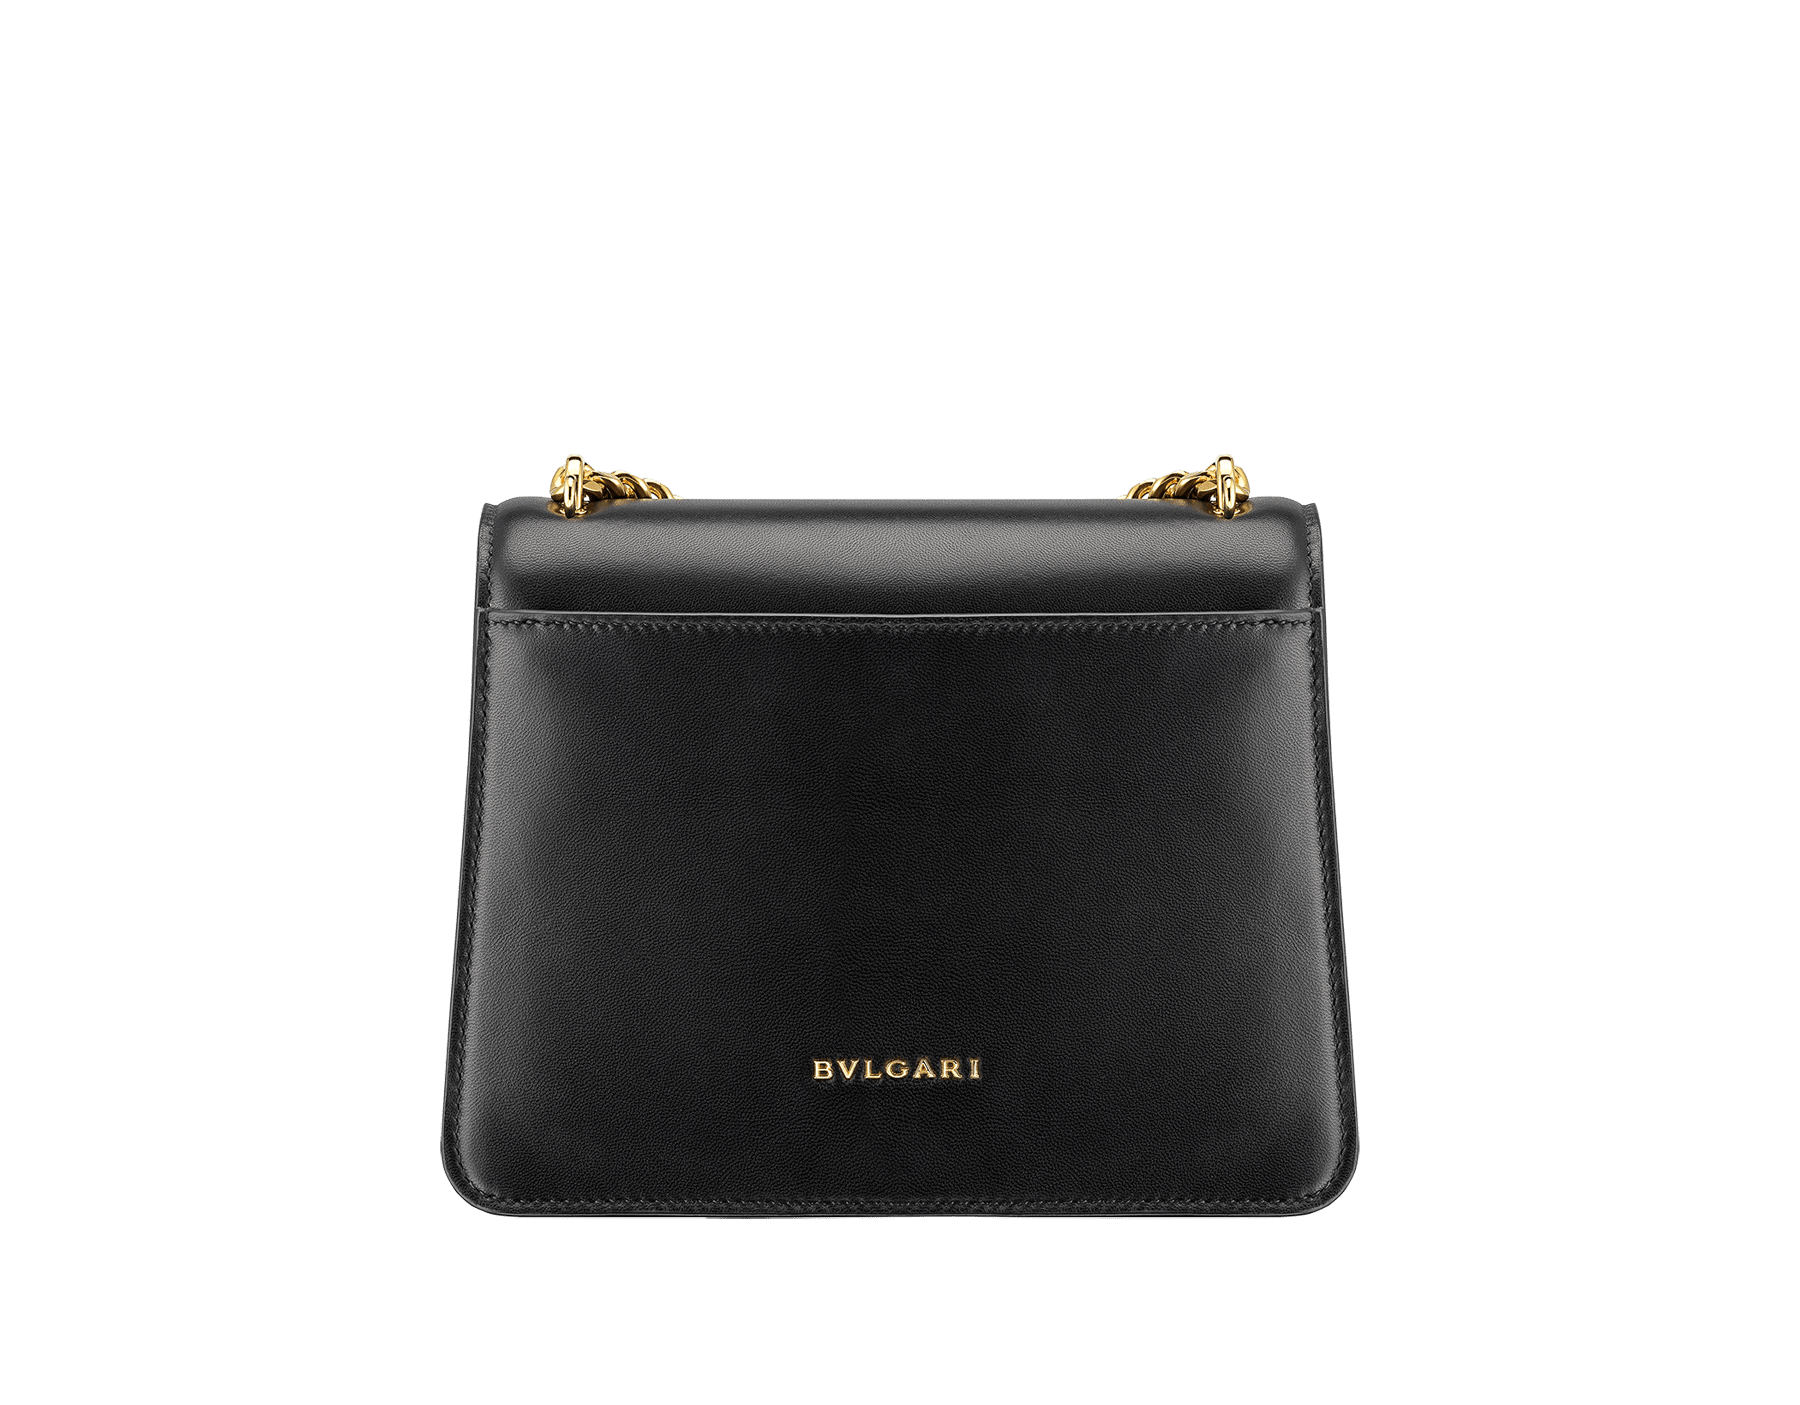 """""""Serpenti Forever"""" small maxi chain crossbody bag in black nappa leather, with black nappa leather inner lining. New Serpenti head closure in gold-plated brass, finished with small black onyx scales in the middle, and red enamel eyes. 291050 image 5"""